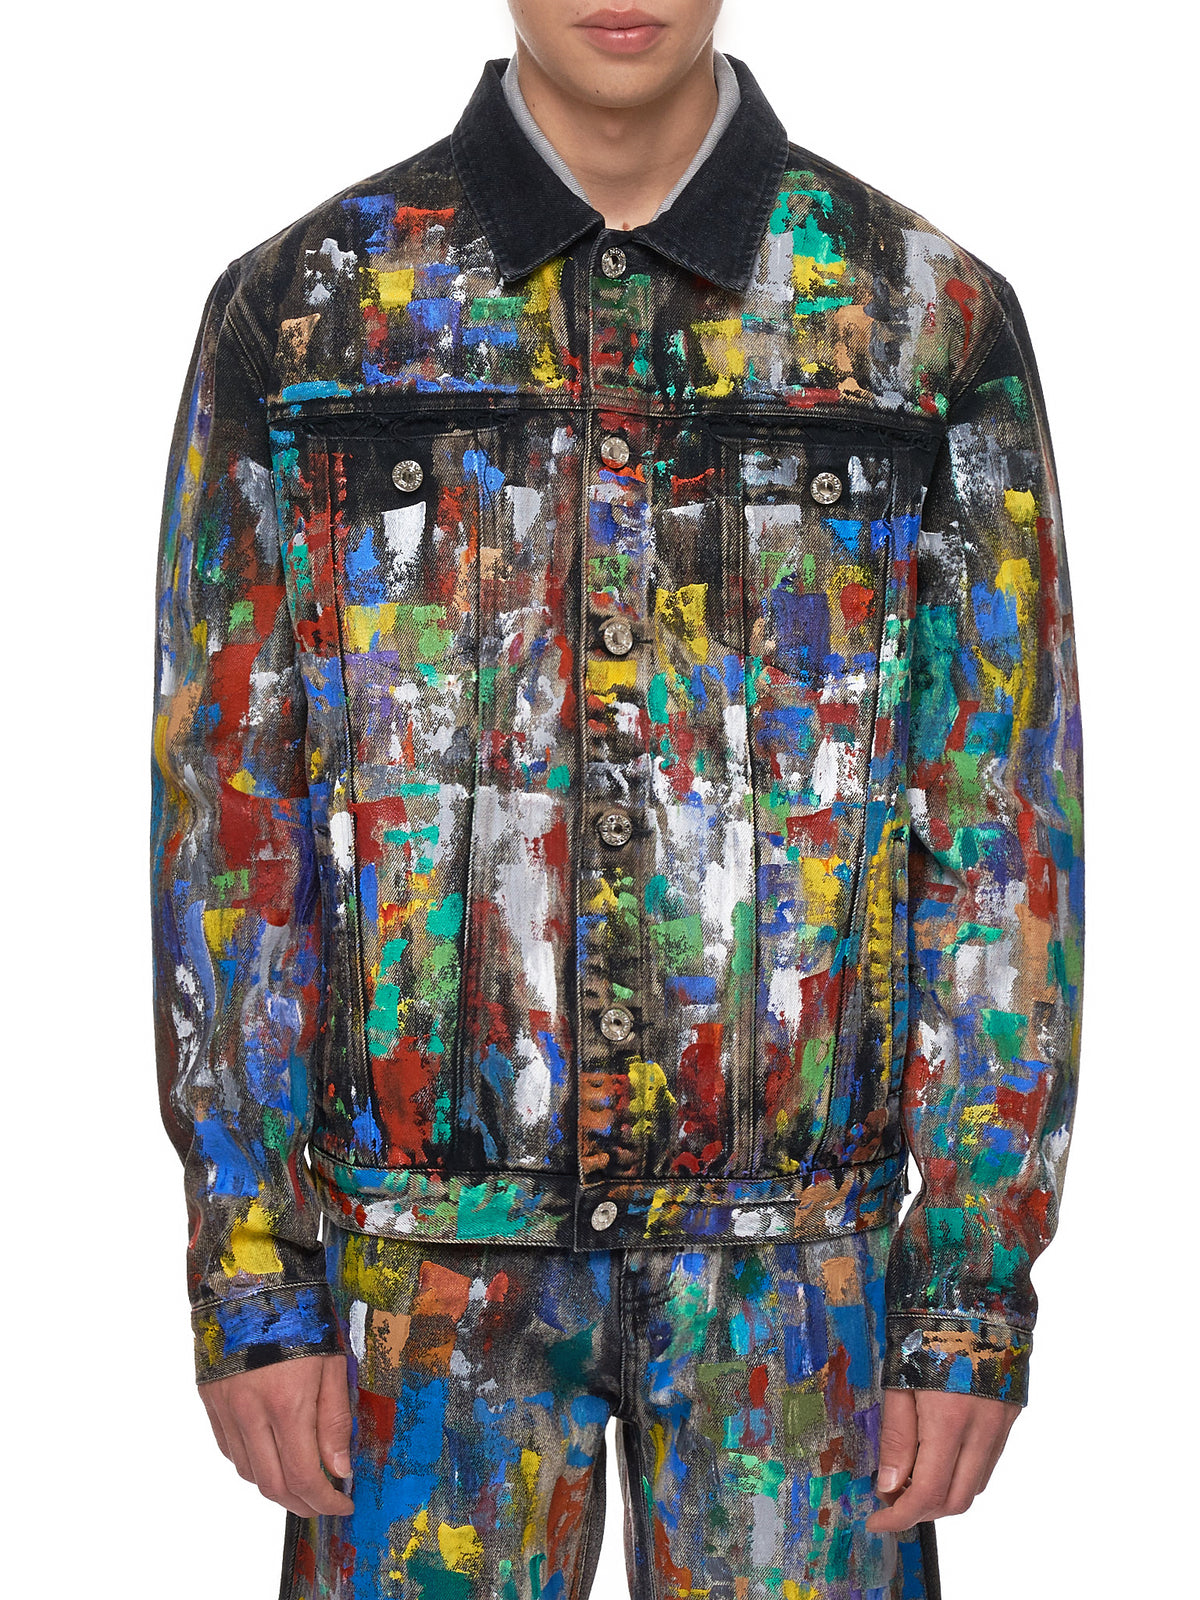 Paint-Splattered Jacket (GEO-CUSTOM-DENIM-BLACK-DENIM)